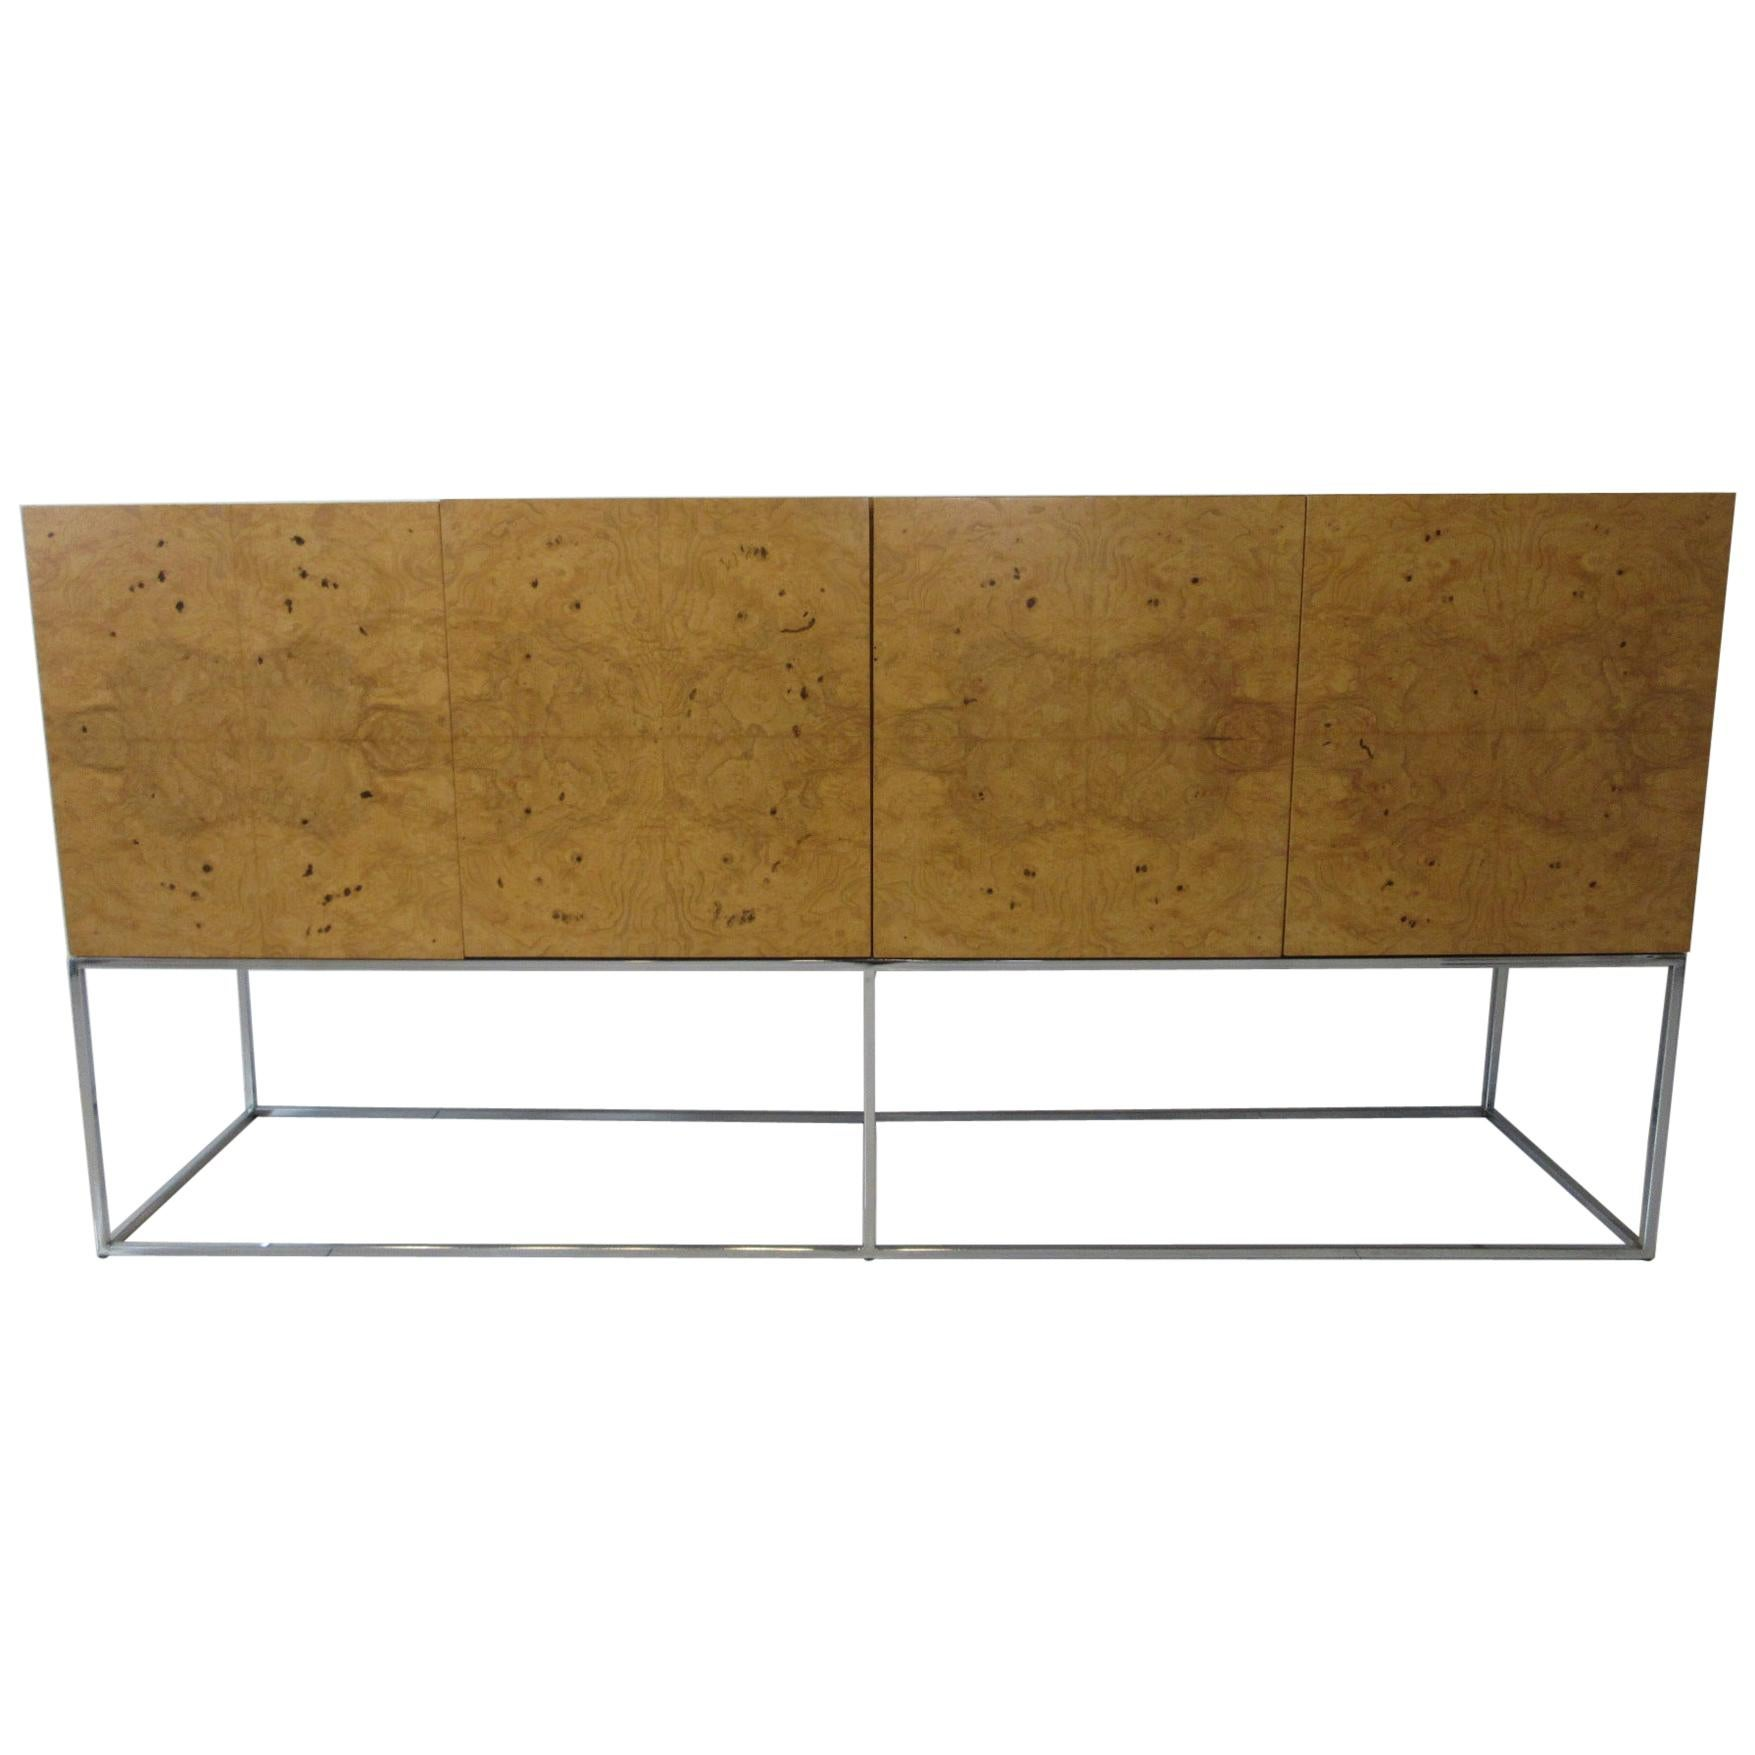 Milo Baughman Olivewood Chrome Credenza or Server by Thayer Coggin